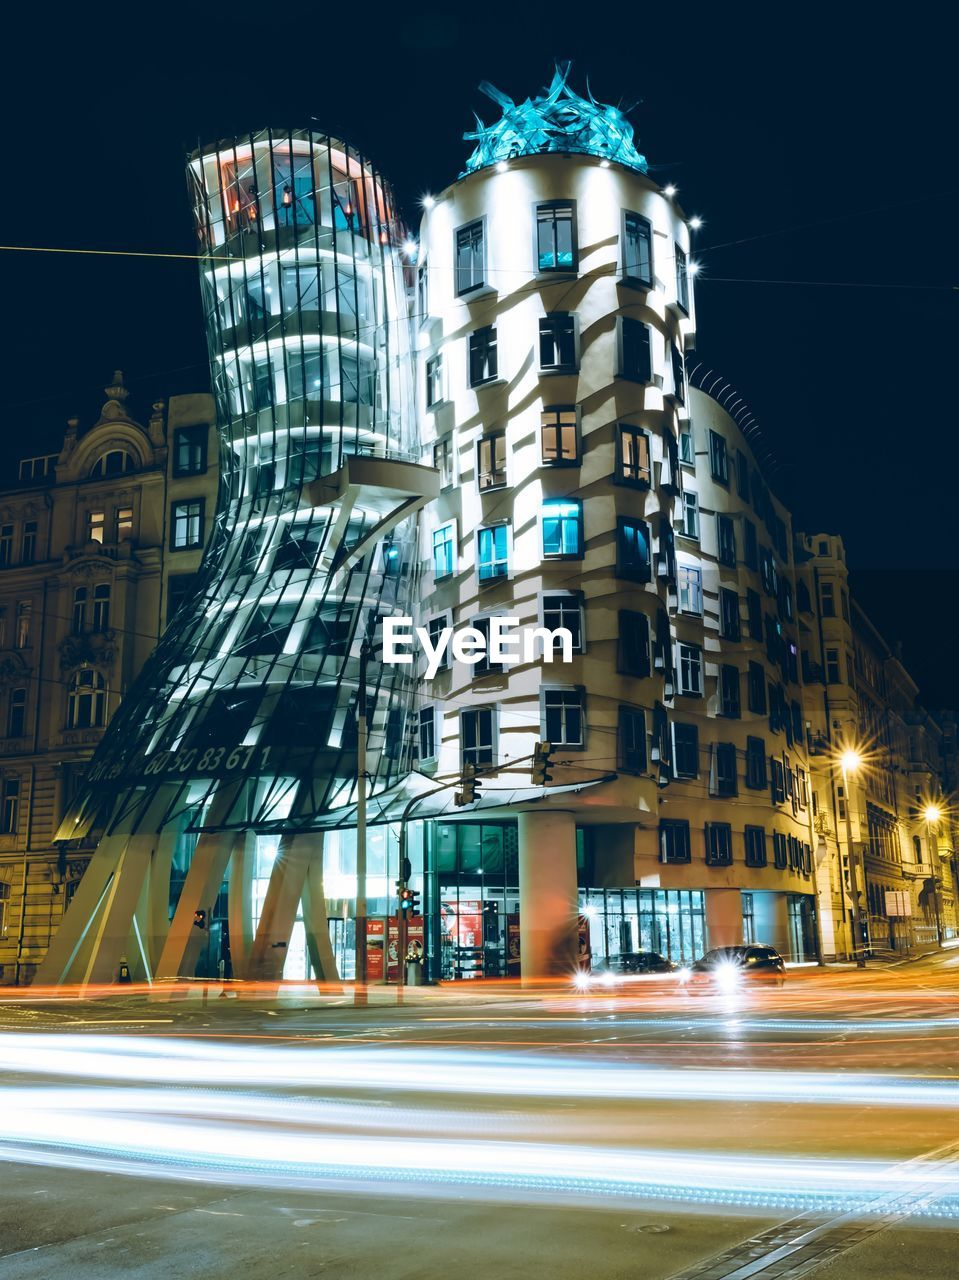 architecture, city, built structure, building exterior, blurred motion, motion, illuminated, night, long exposure, street, road, speed, light trail, building, transportation, city life, no people, city street, outdoors, sign, office building exterior, skyscraper